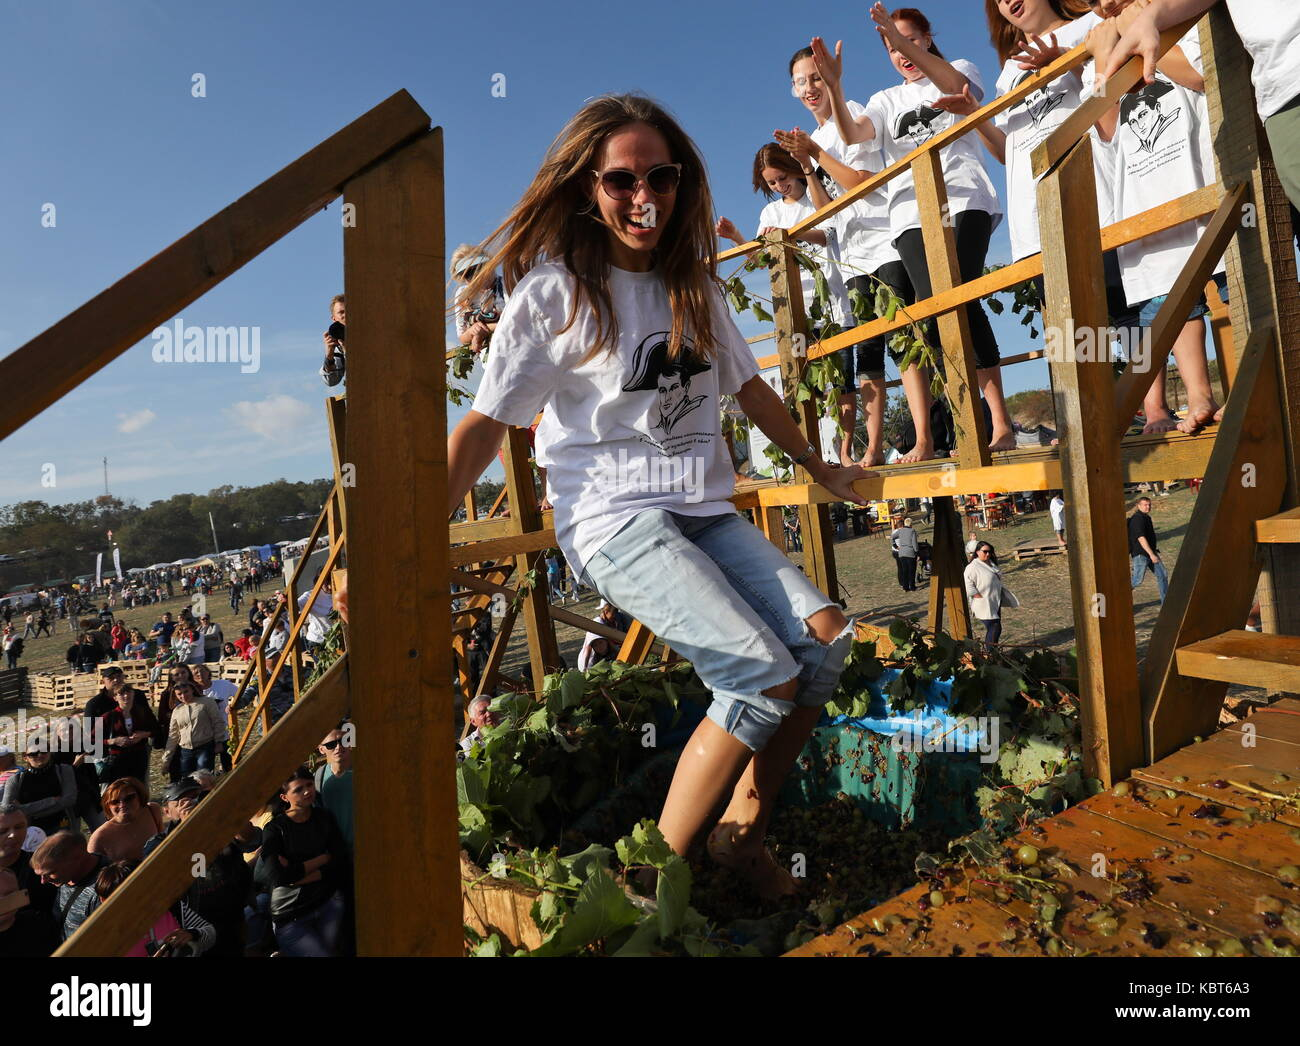 Crimea, Russia. 30th Sep, 2017. A girl stomps grapes at the WineFest grape harvesting and wine making festival at - Stock Image